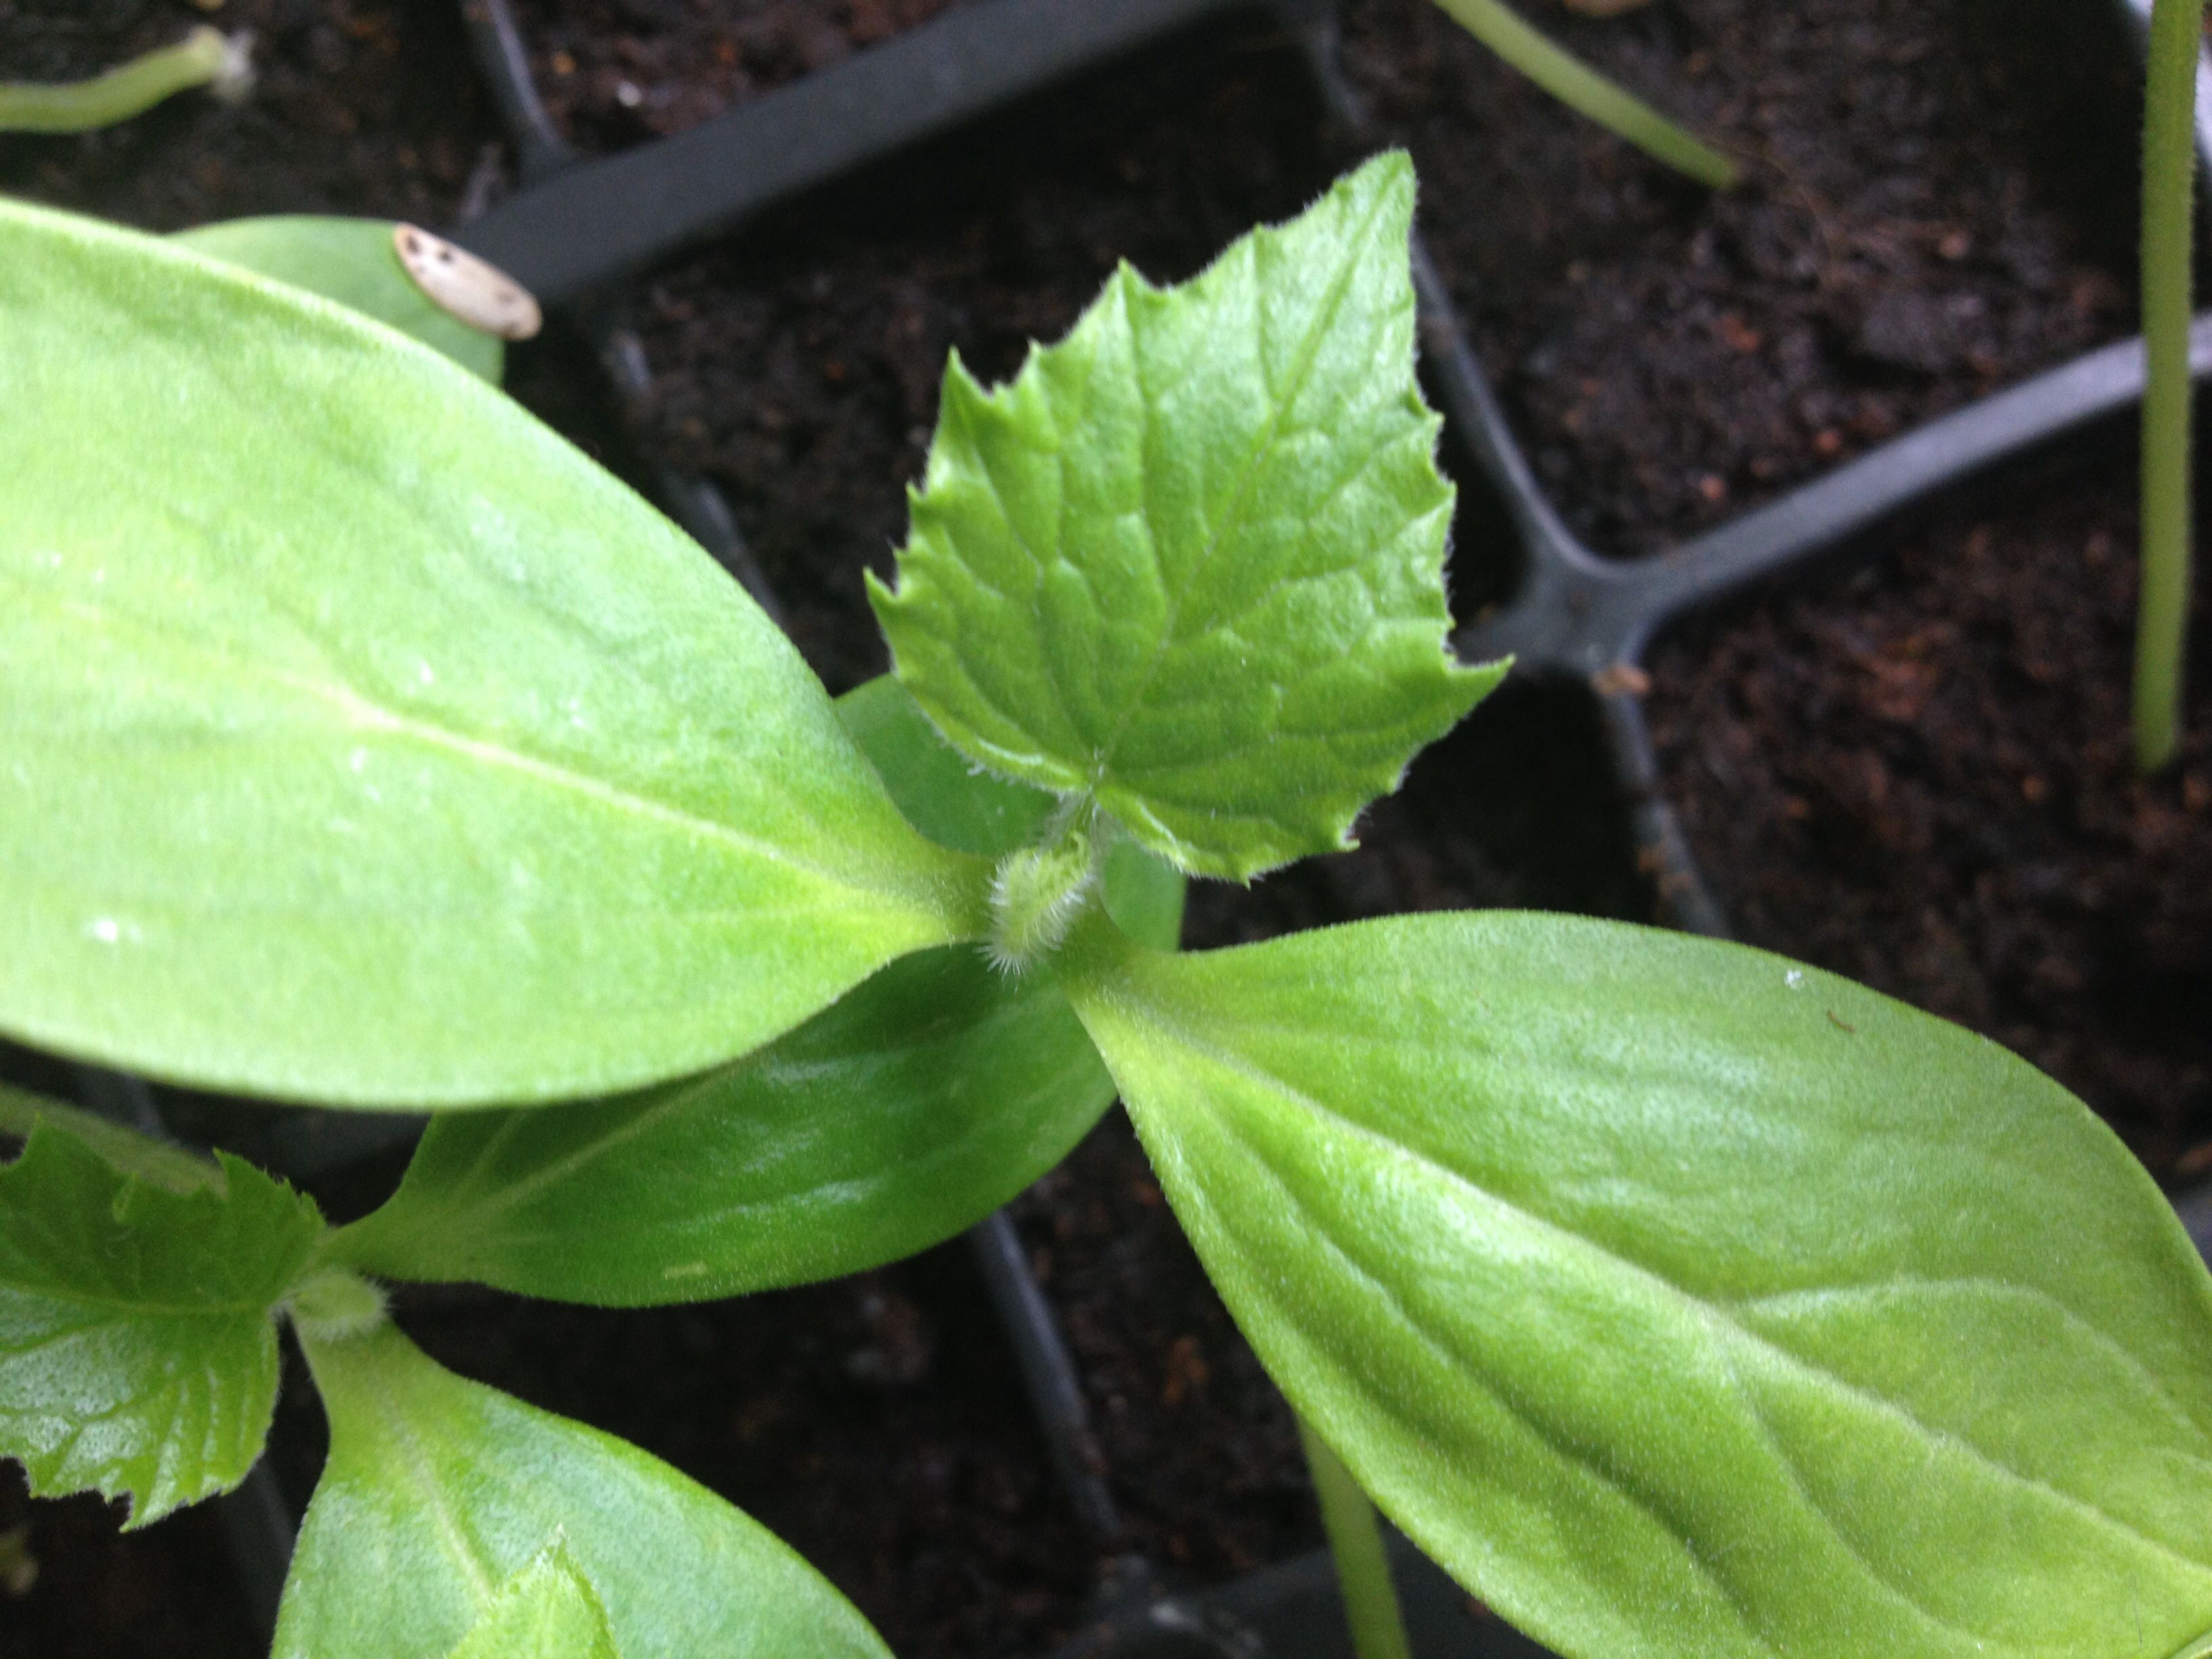 Lemon cucumber seedlings 10/4/14